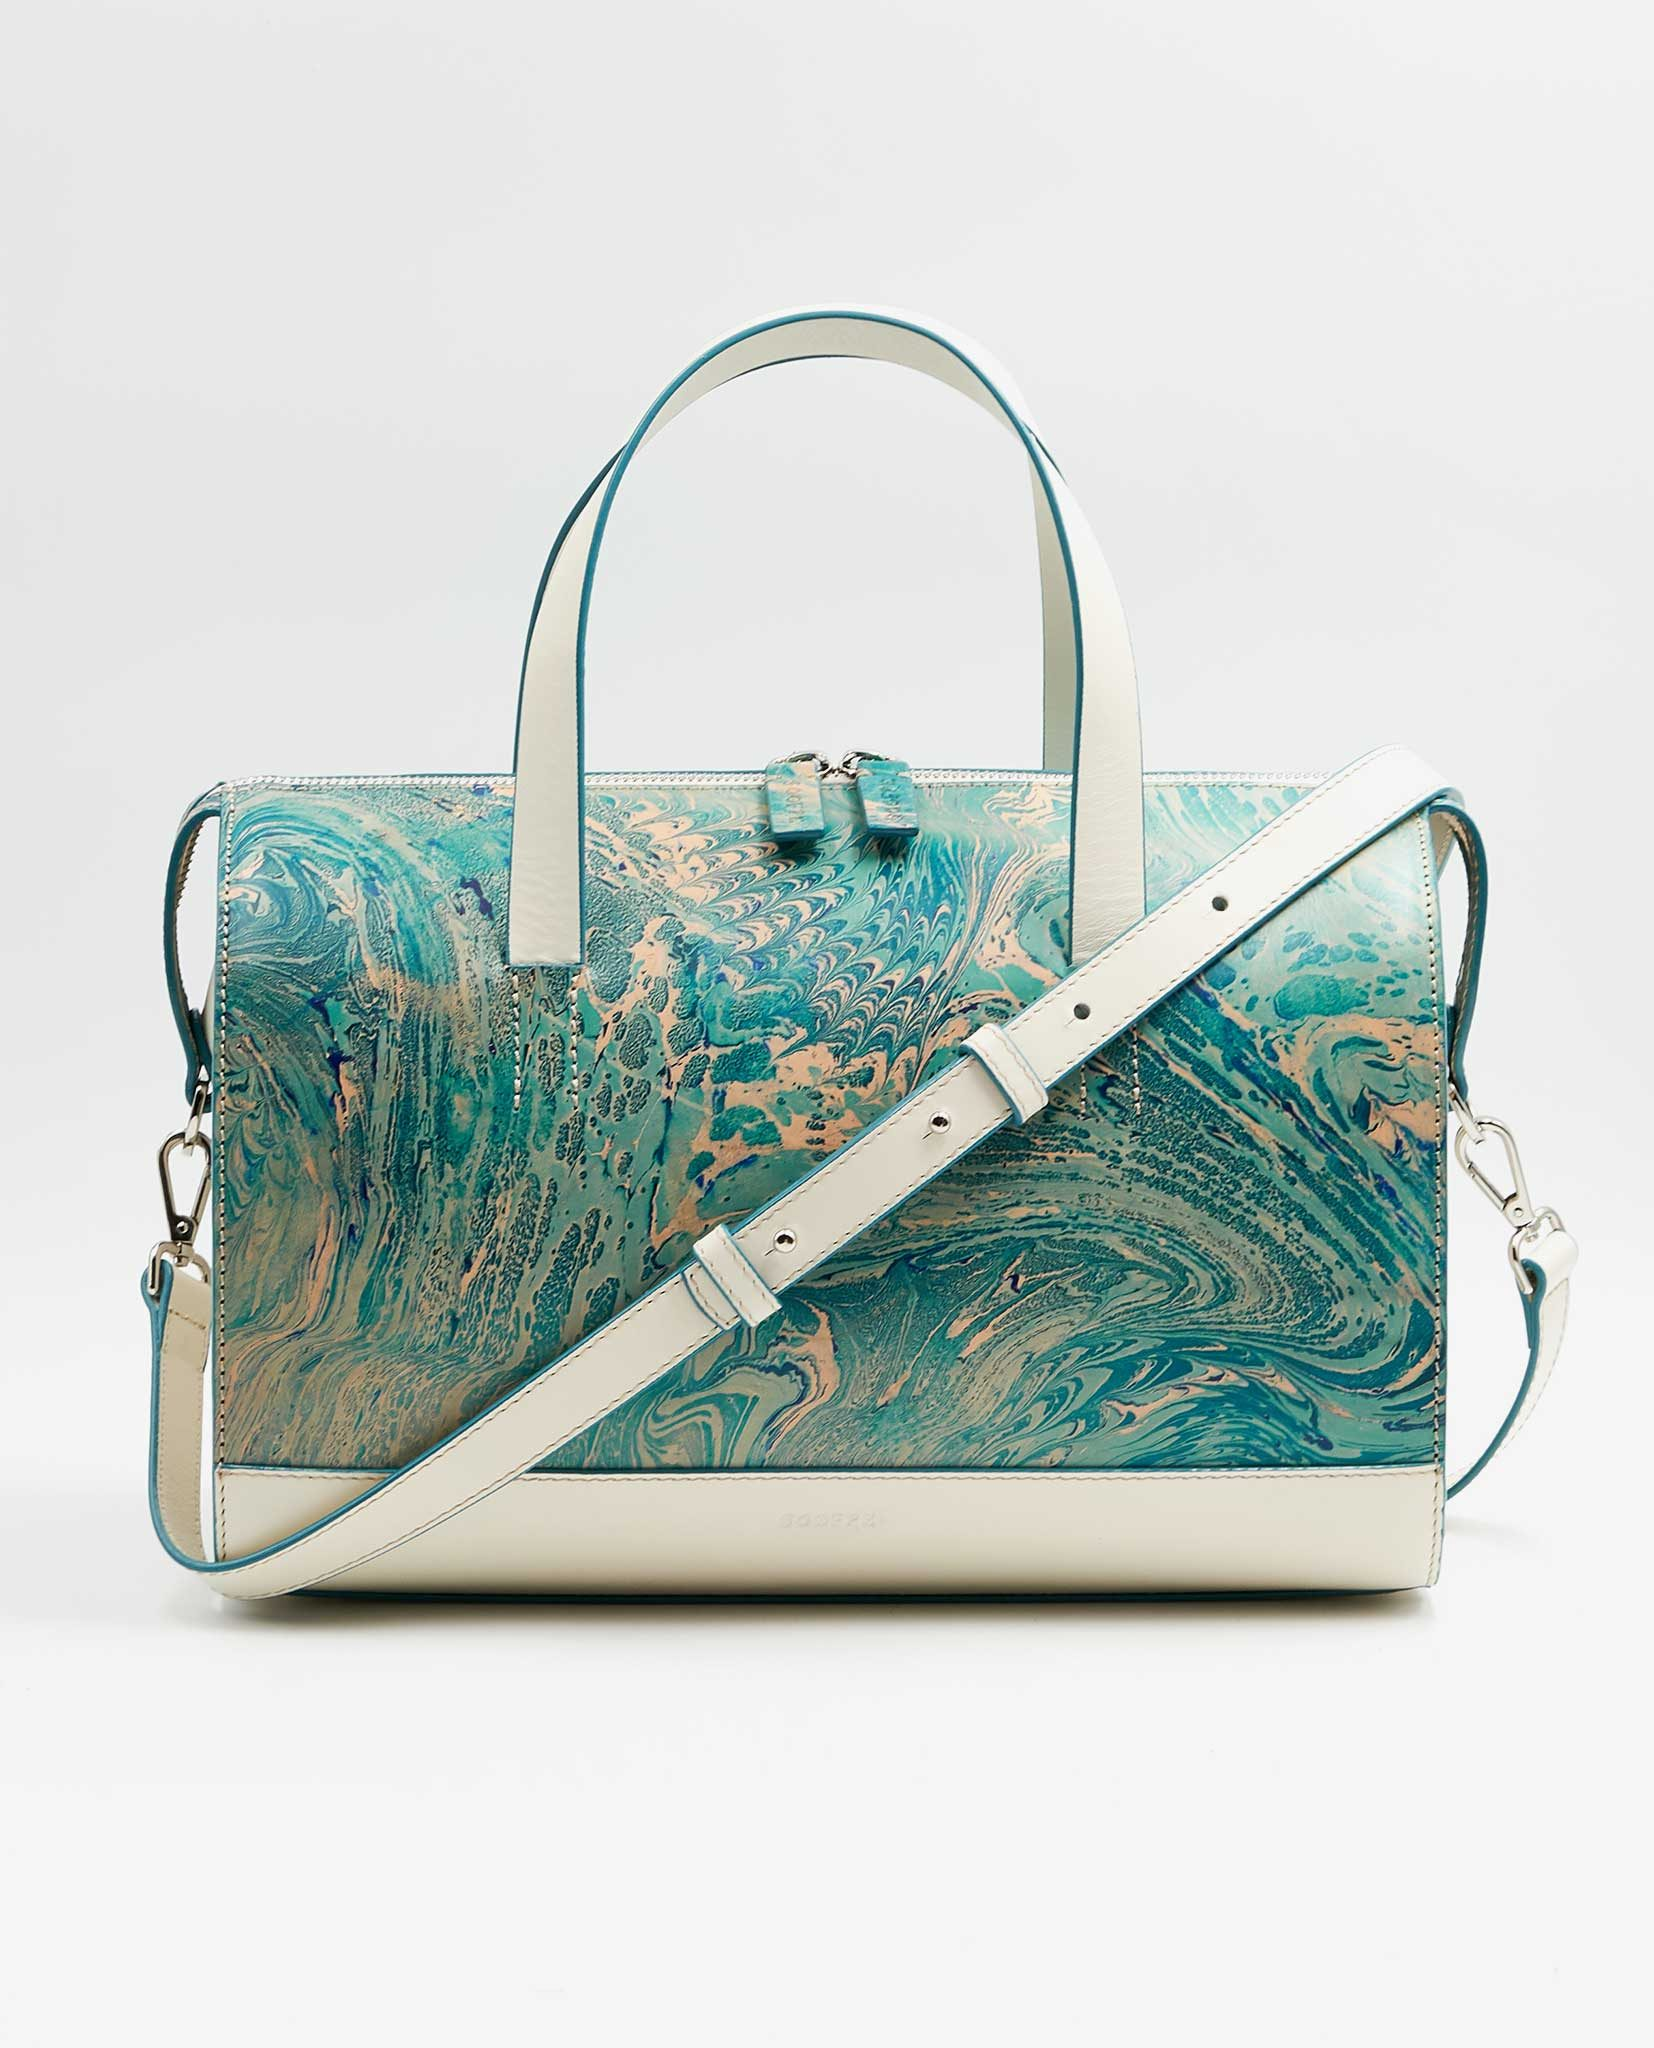 SOOFRE-Berlin-unique-Bowler-Bag-marble-turquoise-ivory-FRONT